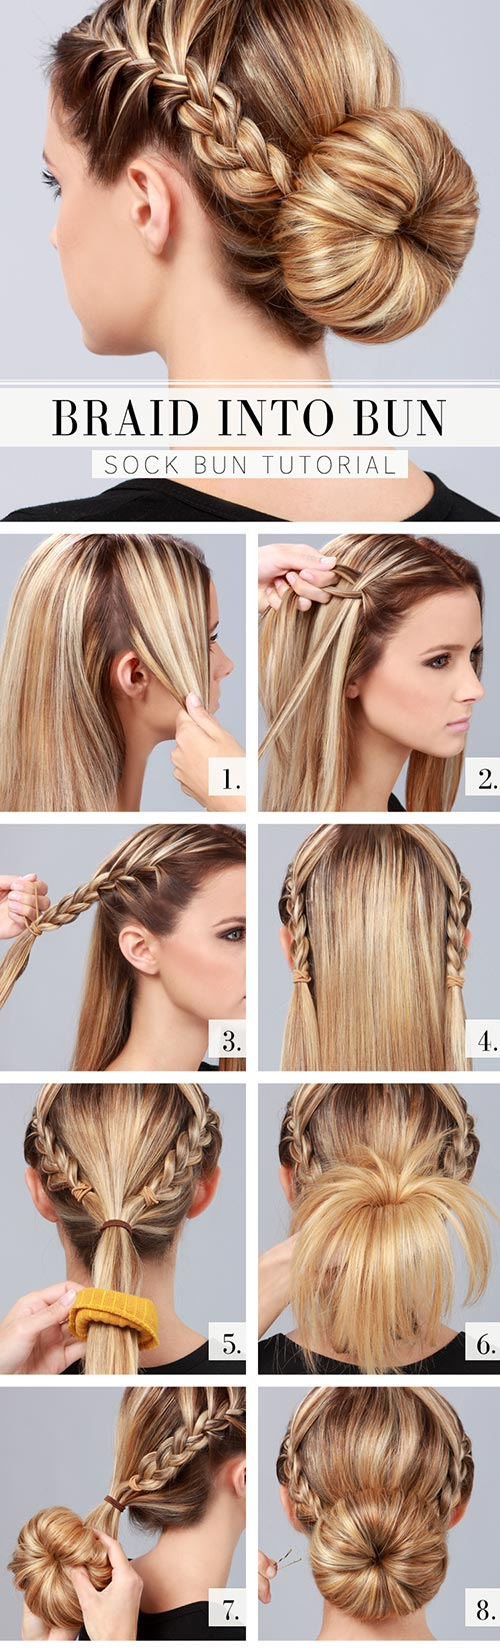 15 Step by Step Hairstyle Tutorials to Do in Less Than 5 Min